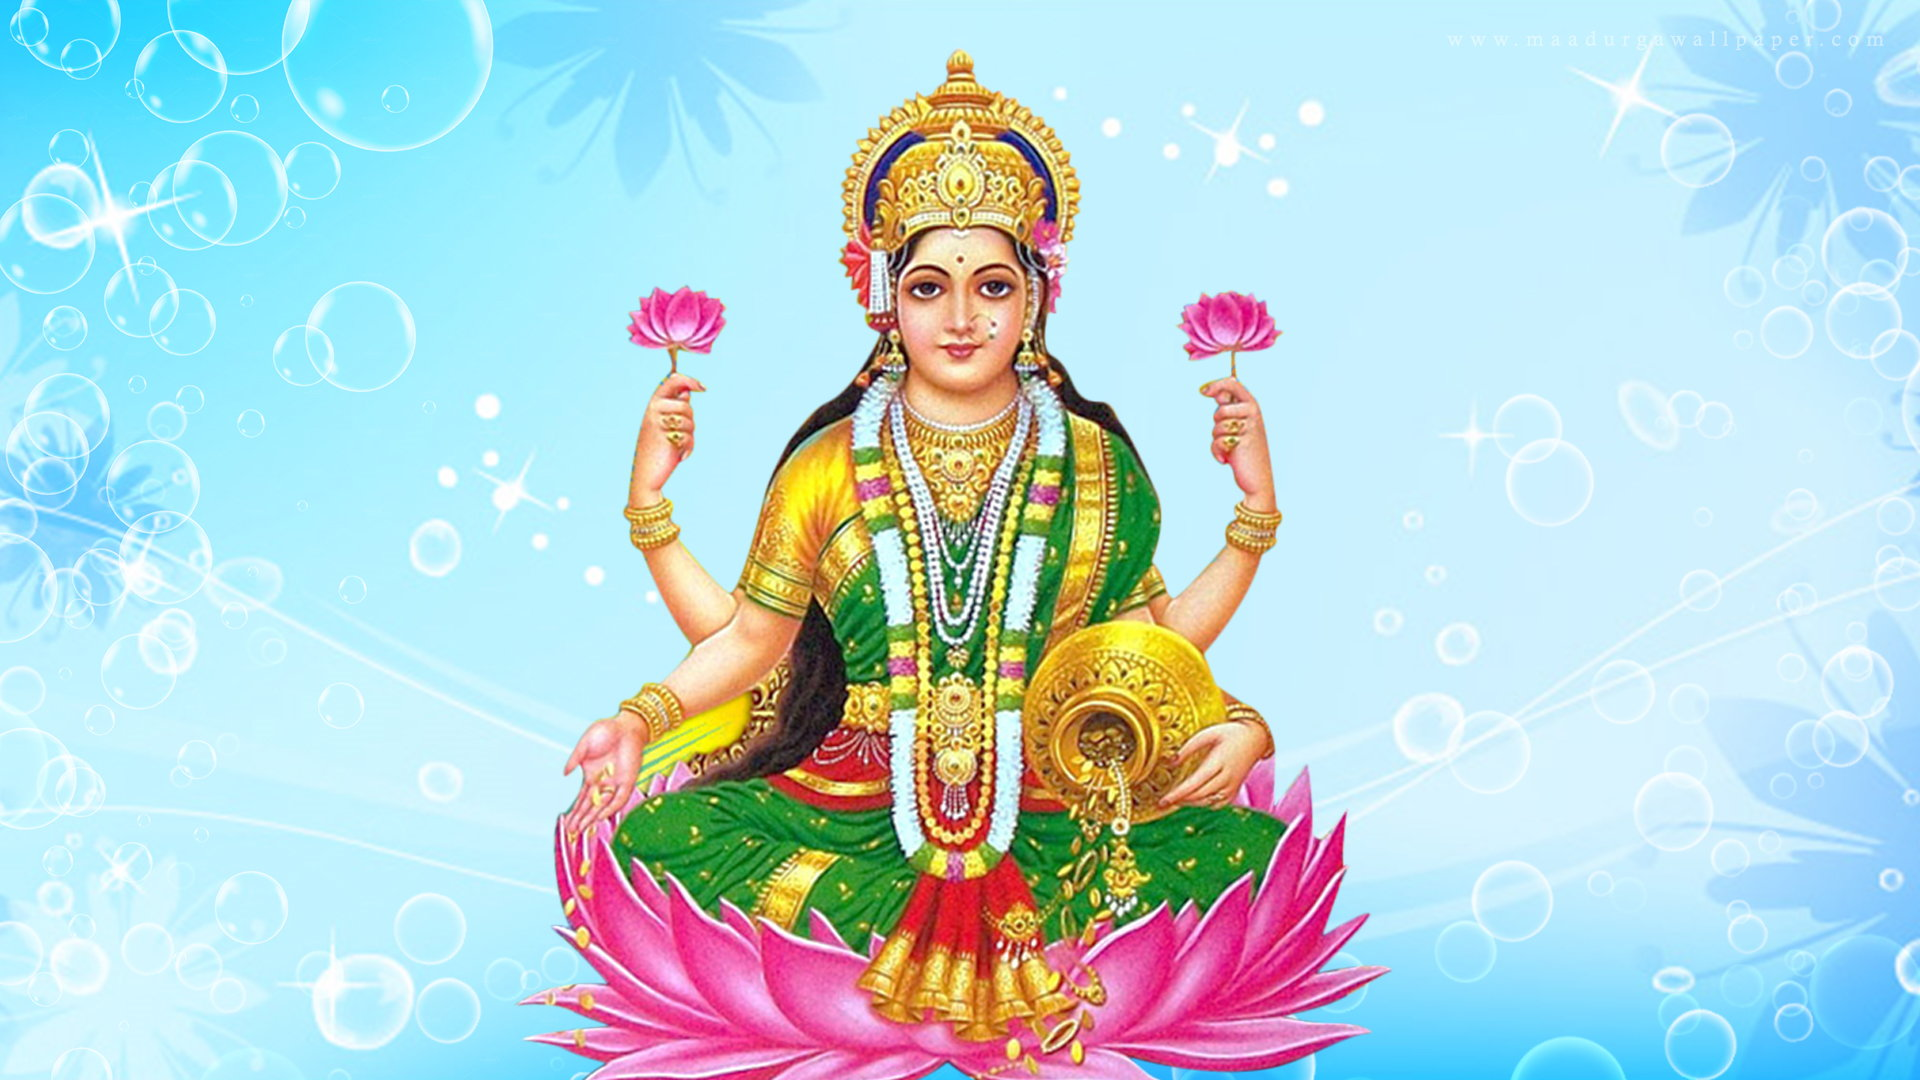 Download Free Hd Wallpapers Of Maa Laxmilakshmi Devi